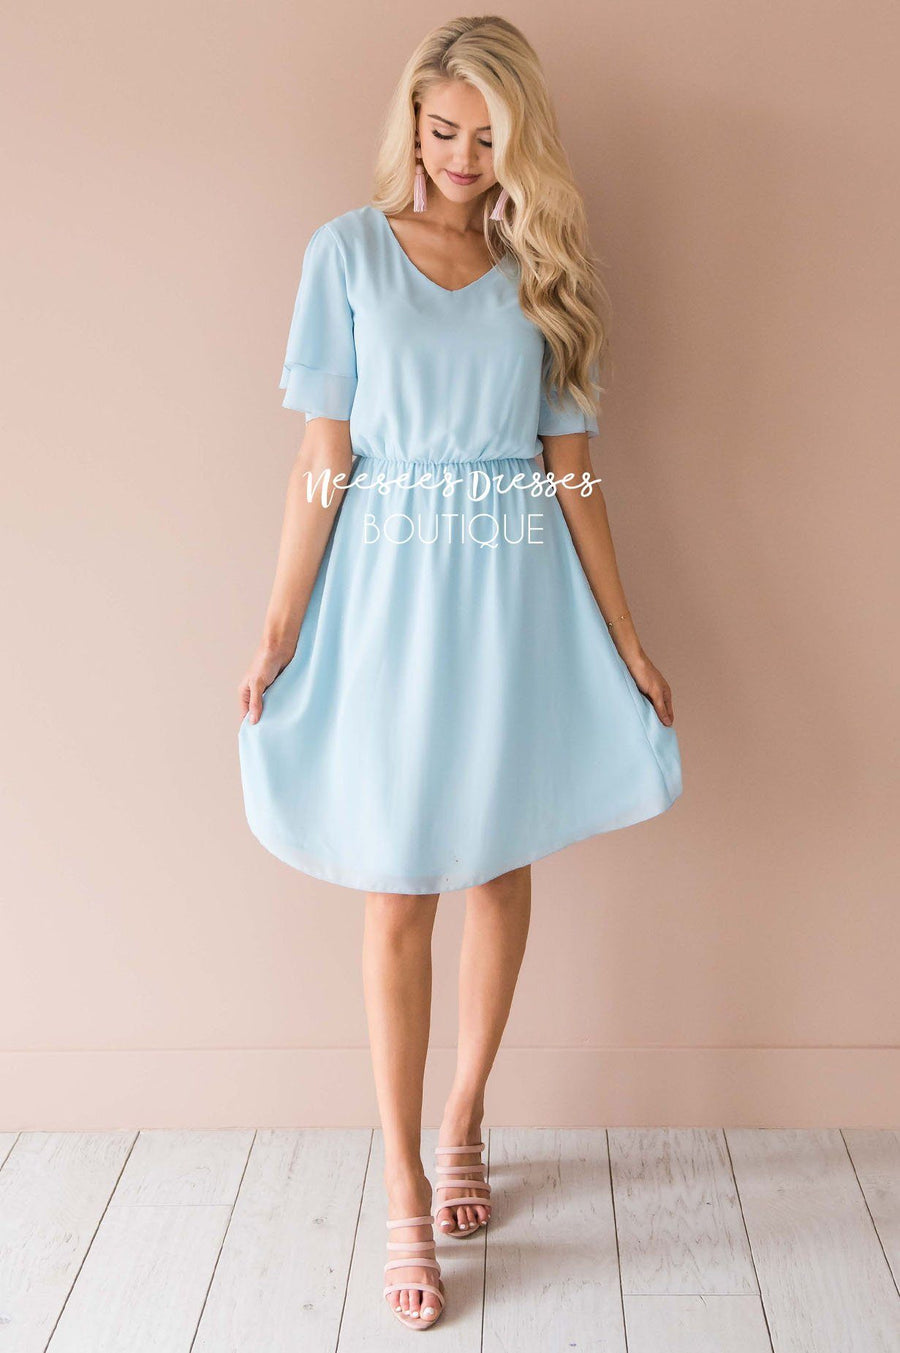 Church Dresses with Belts